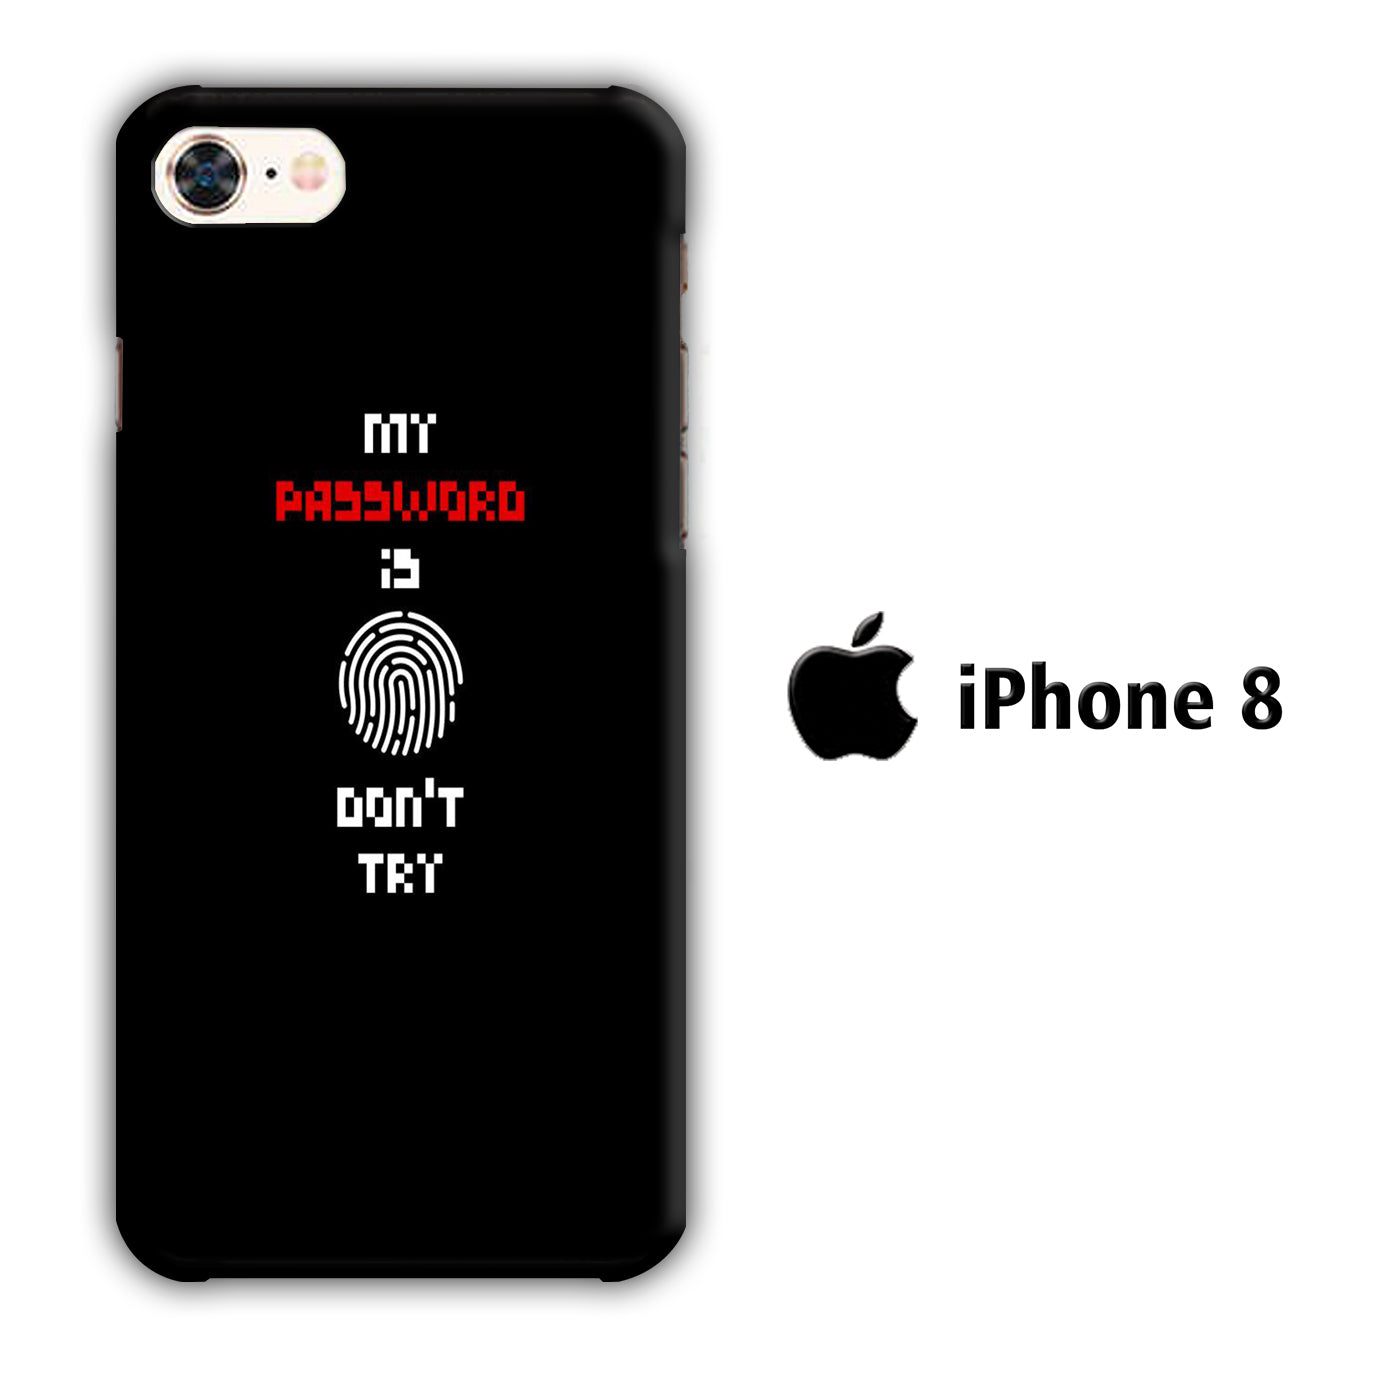 My Password iPhone 8 3D Case